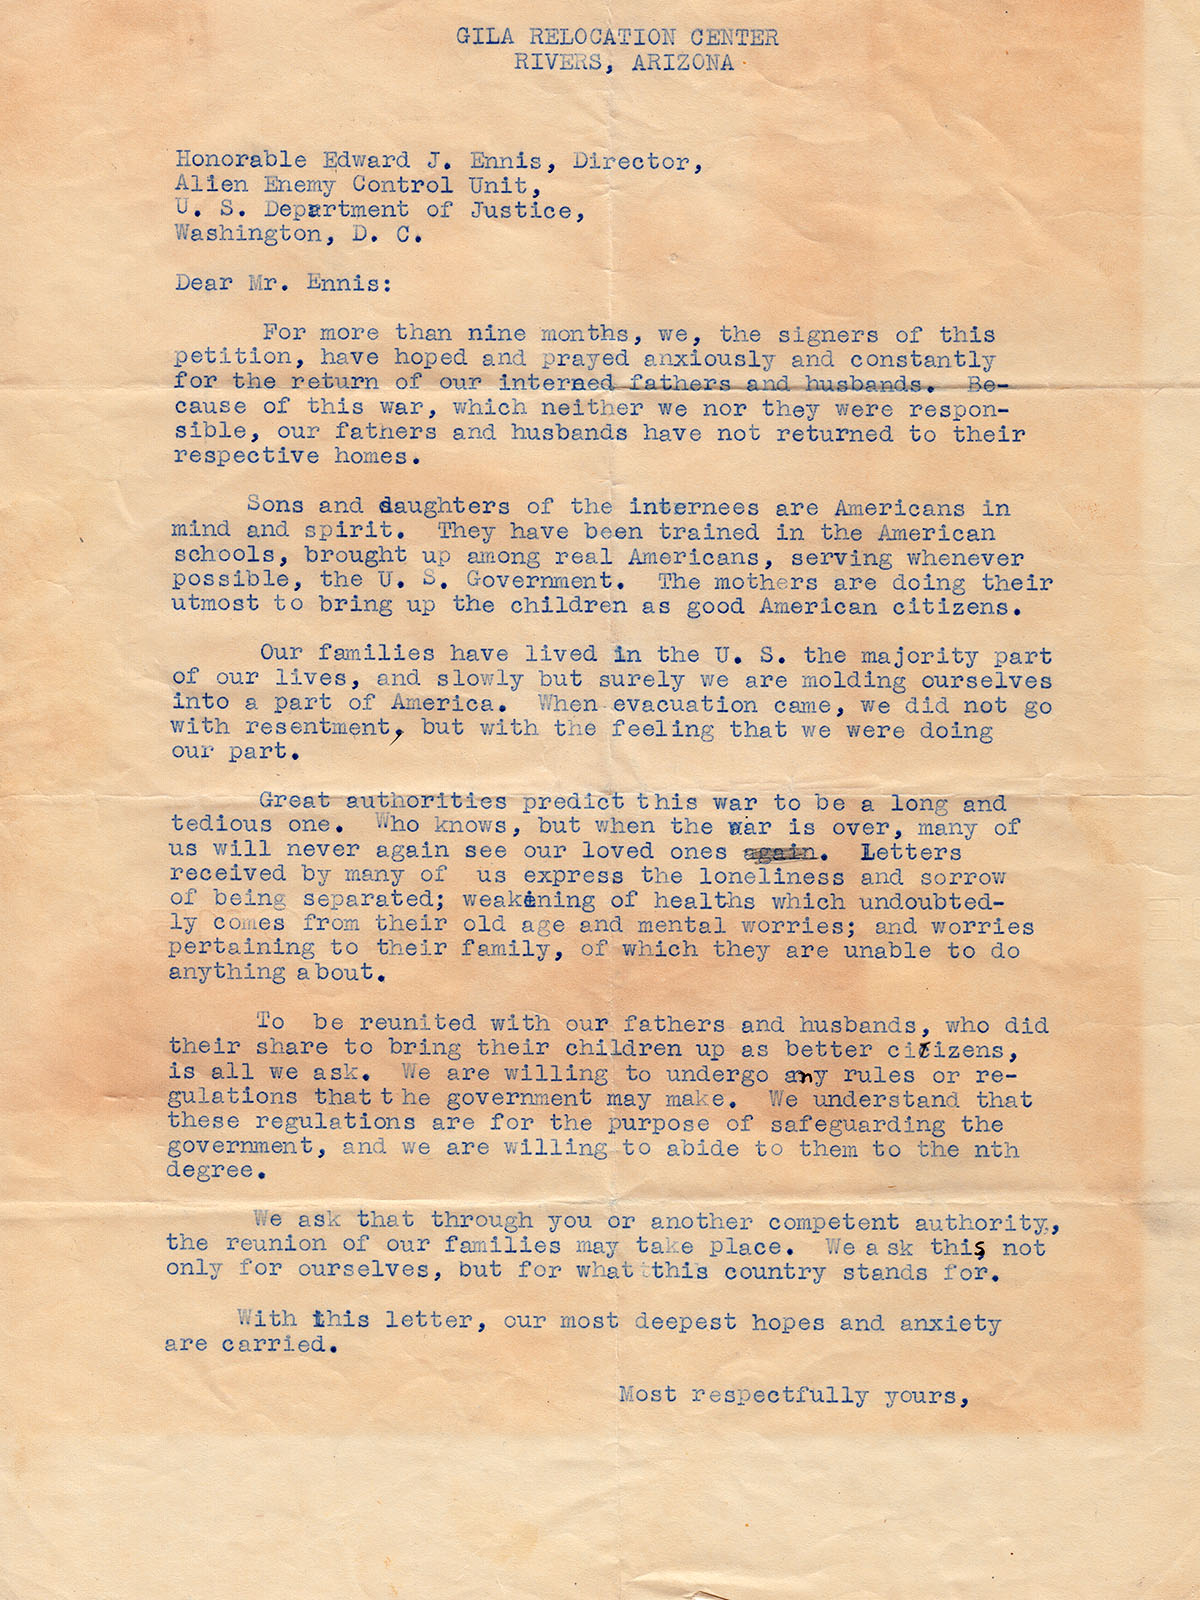 Petition letter to Edward J. Ennis, director of the Alien Enemy Control Unit of the U.S. Department of Justice from Gila Relocation Center, Arizona.